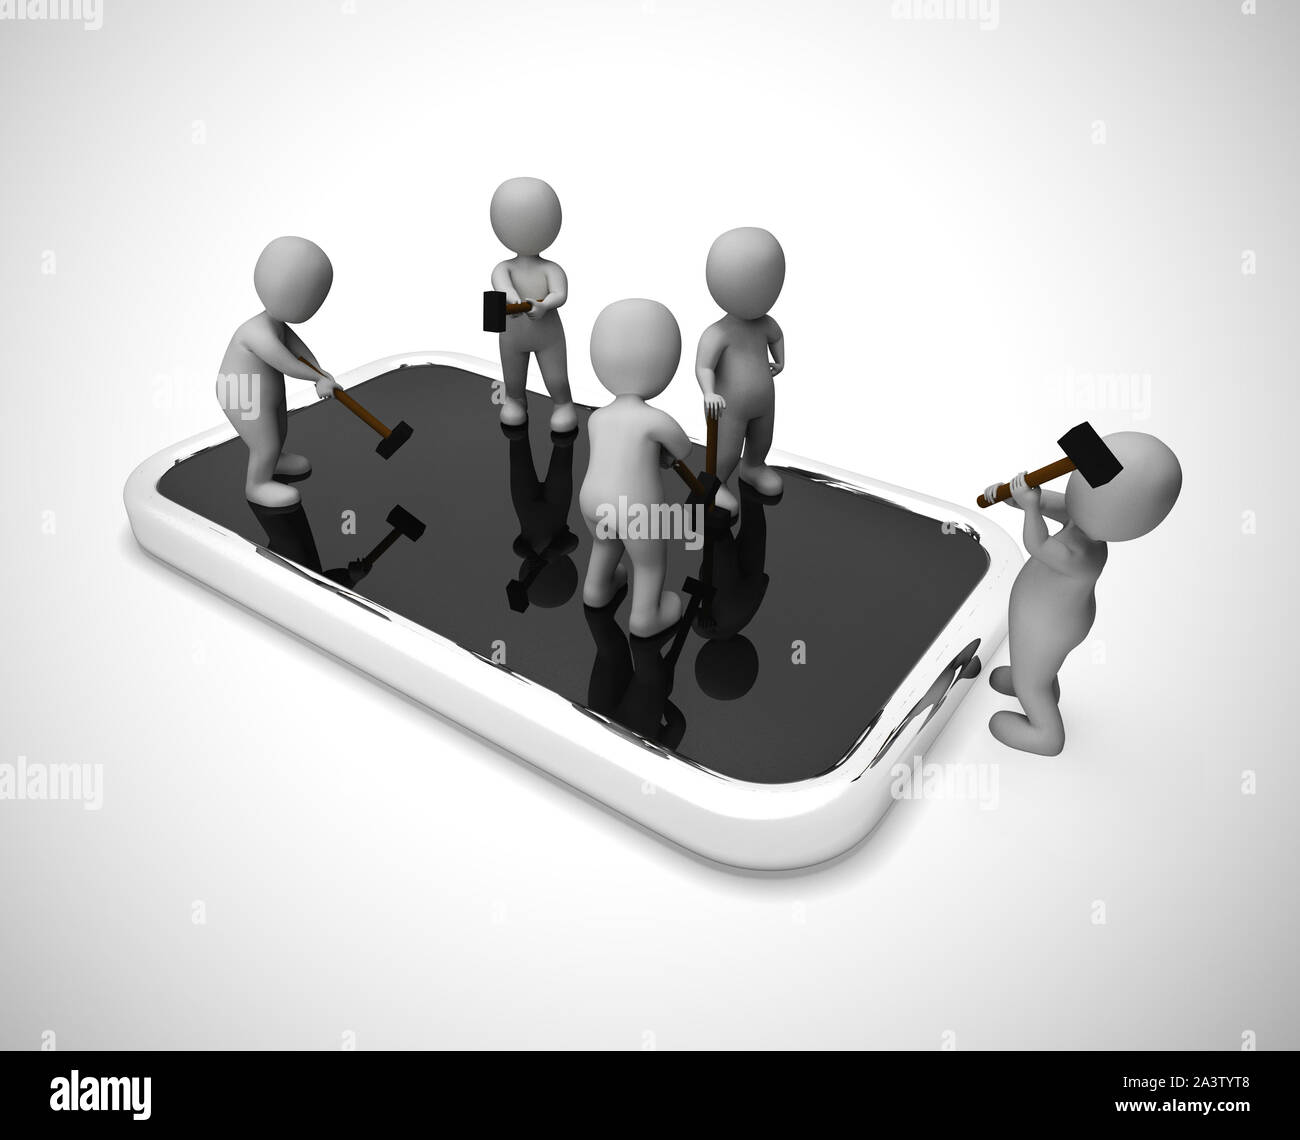 Mobile smartphone repair or overhaul. Fixing the hardware or application - 3d illustration Stock Photo